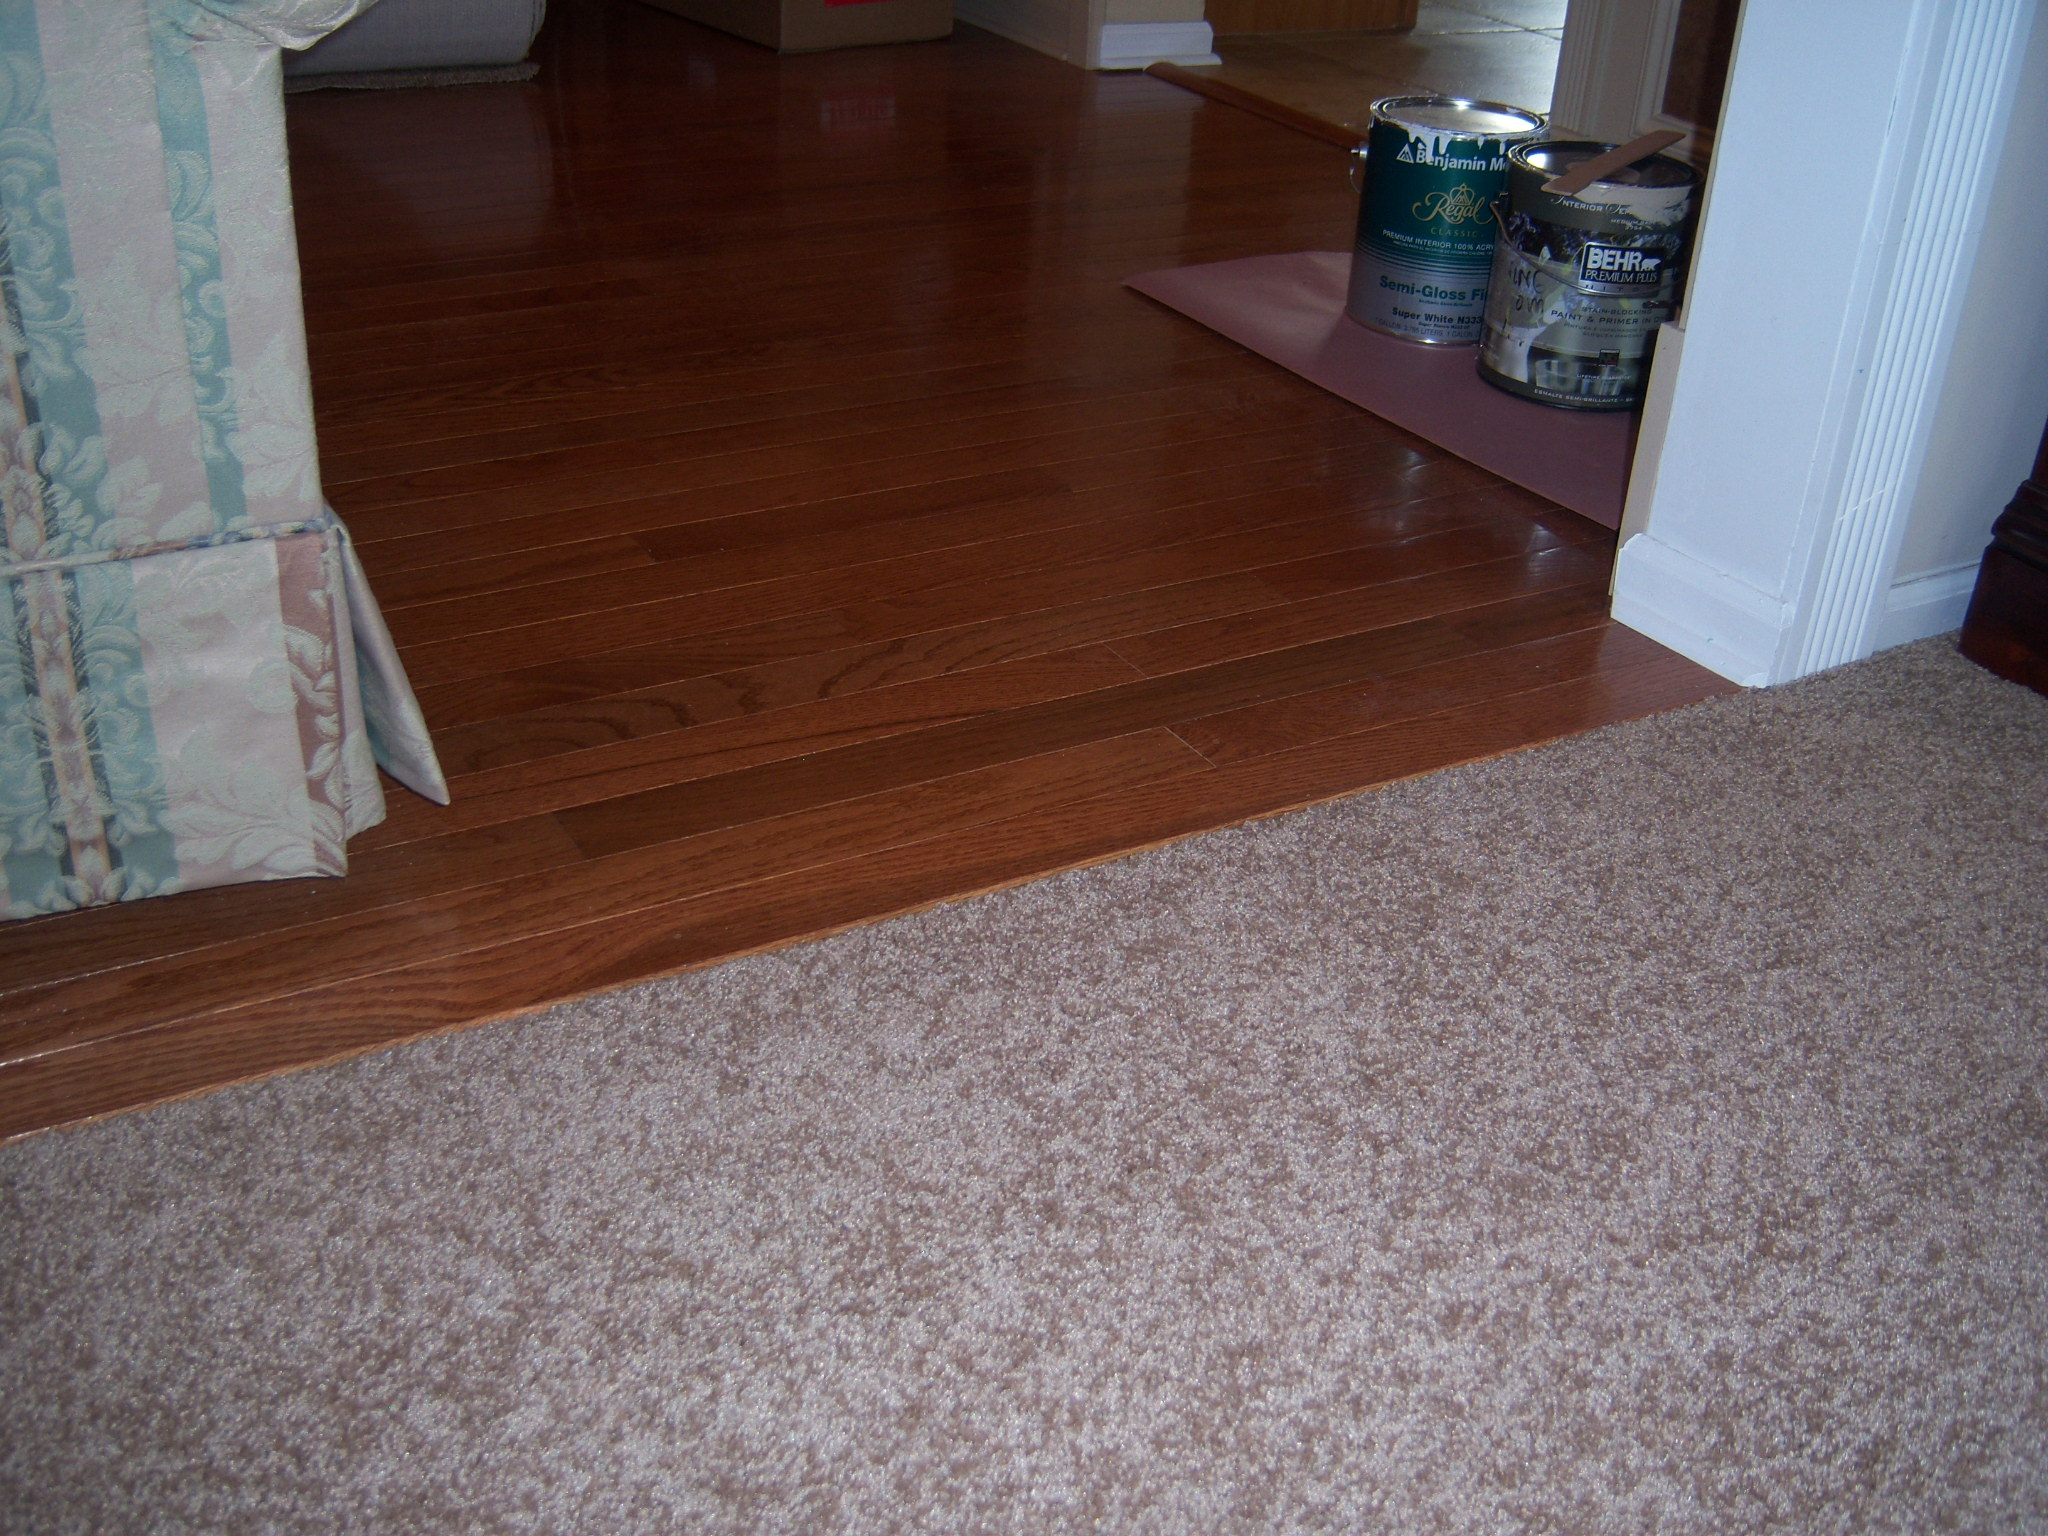 Rugs for hardwood floors flooring ideas home for Floating hardwood floor